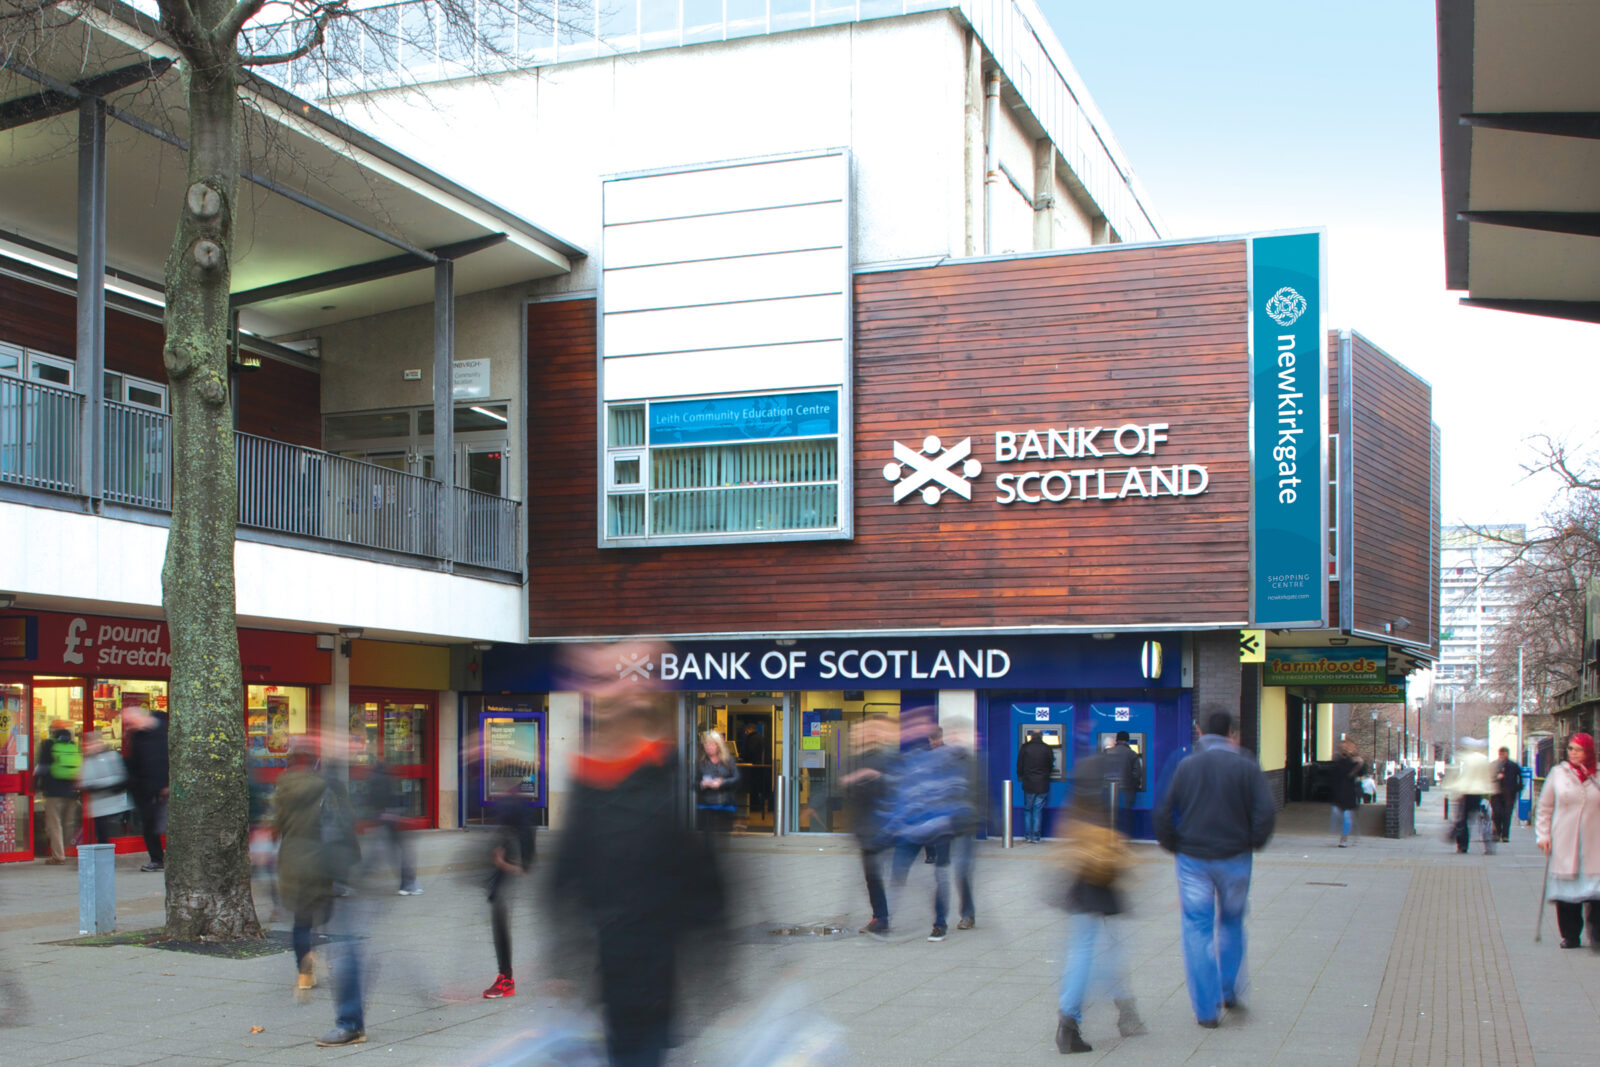 097648d7ed New brand, New era for Newkirkgate Shopping Centre in the heart of Leith